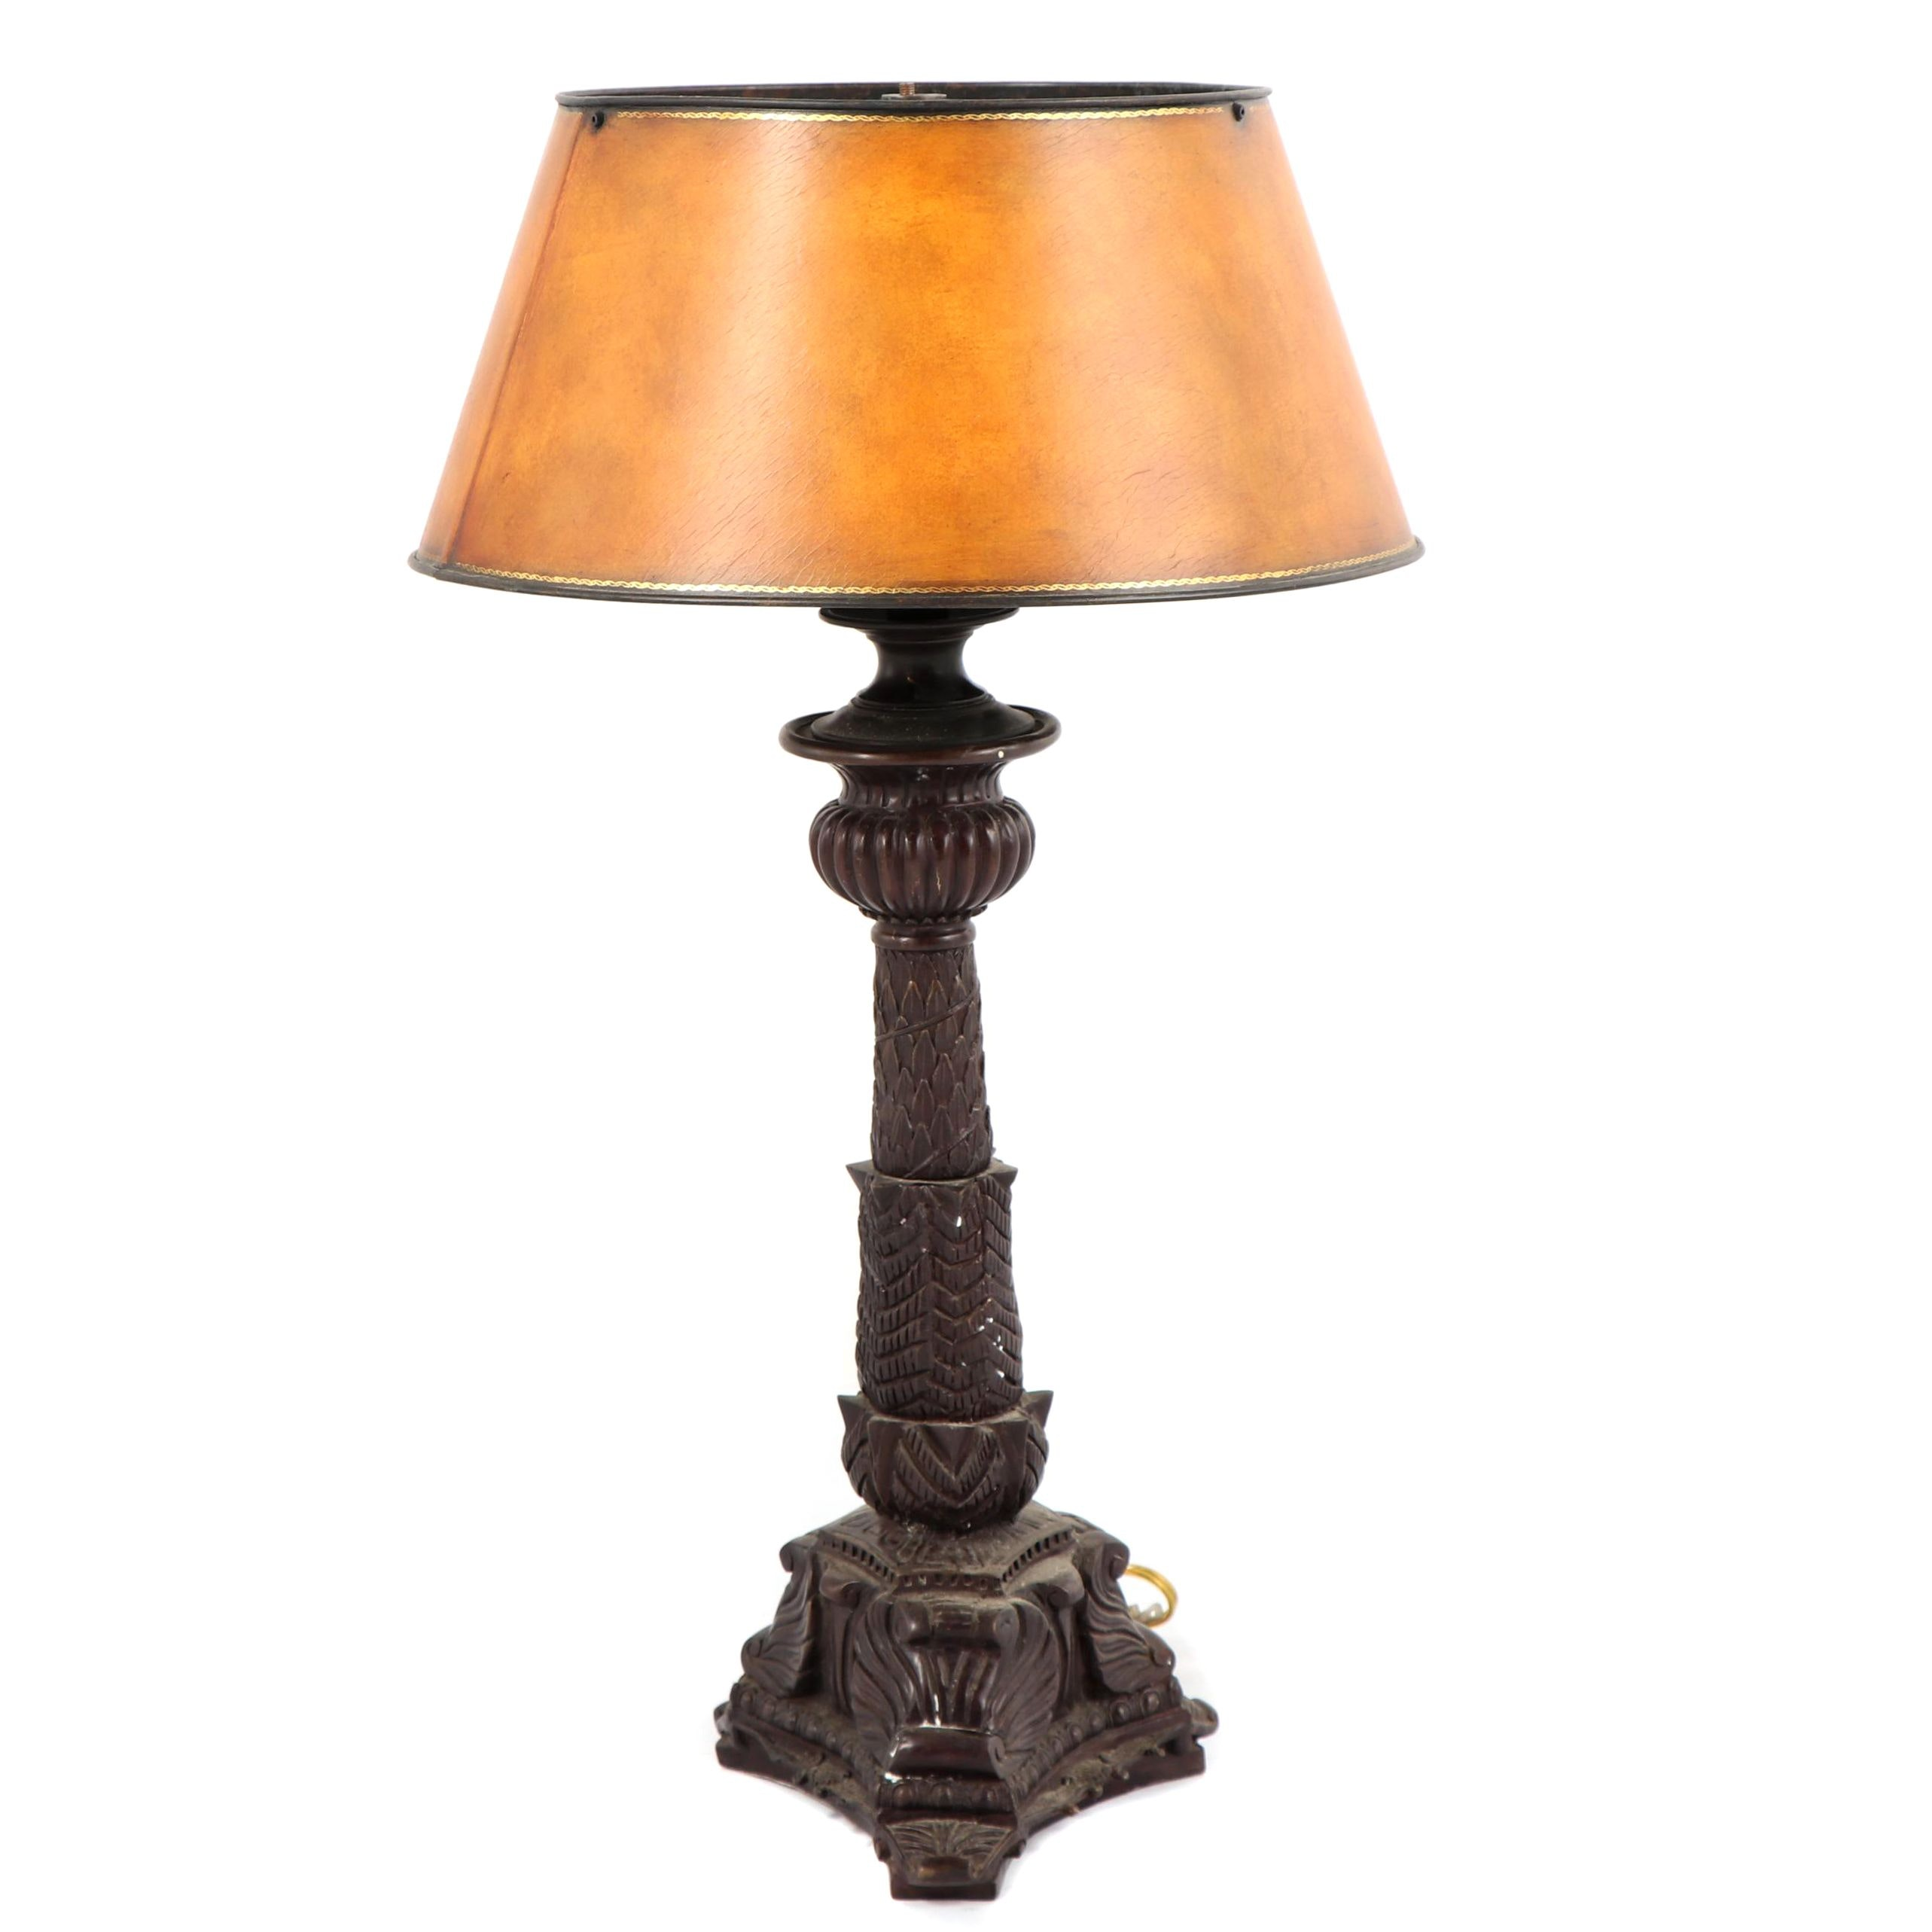 Maitland Smith Cast Metal Columnar Table Lamp with Faux Leather Metal Shade